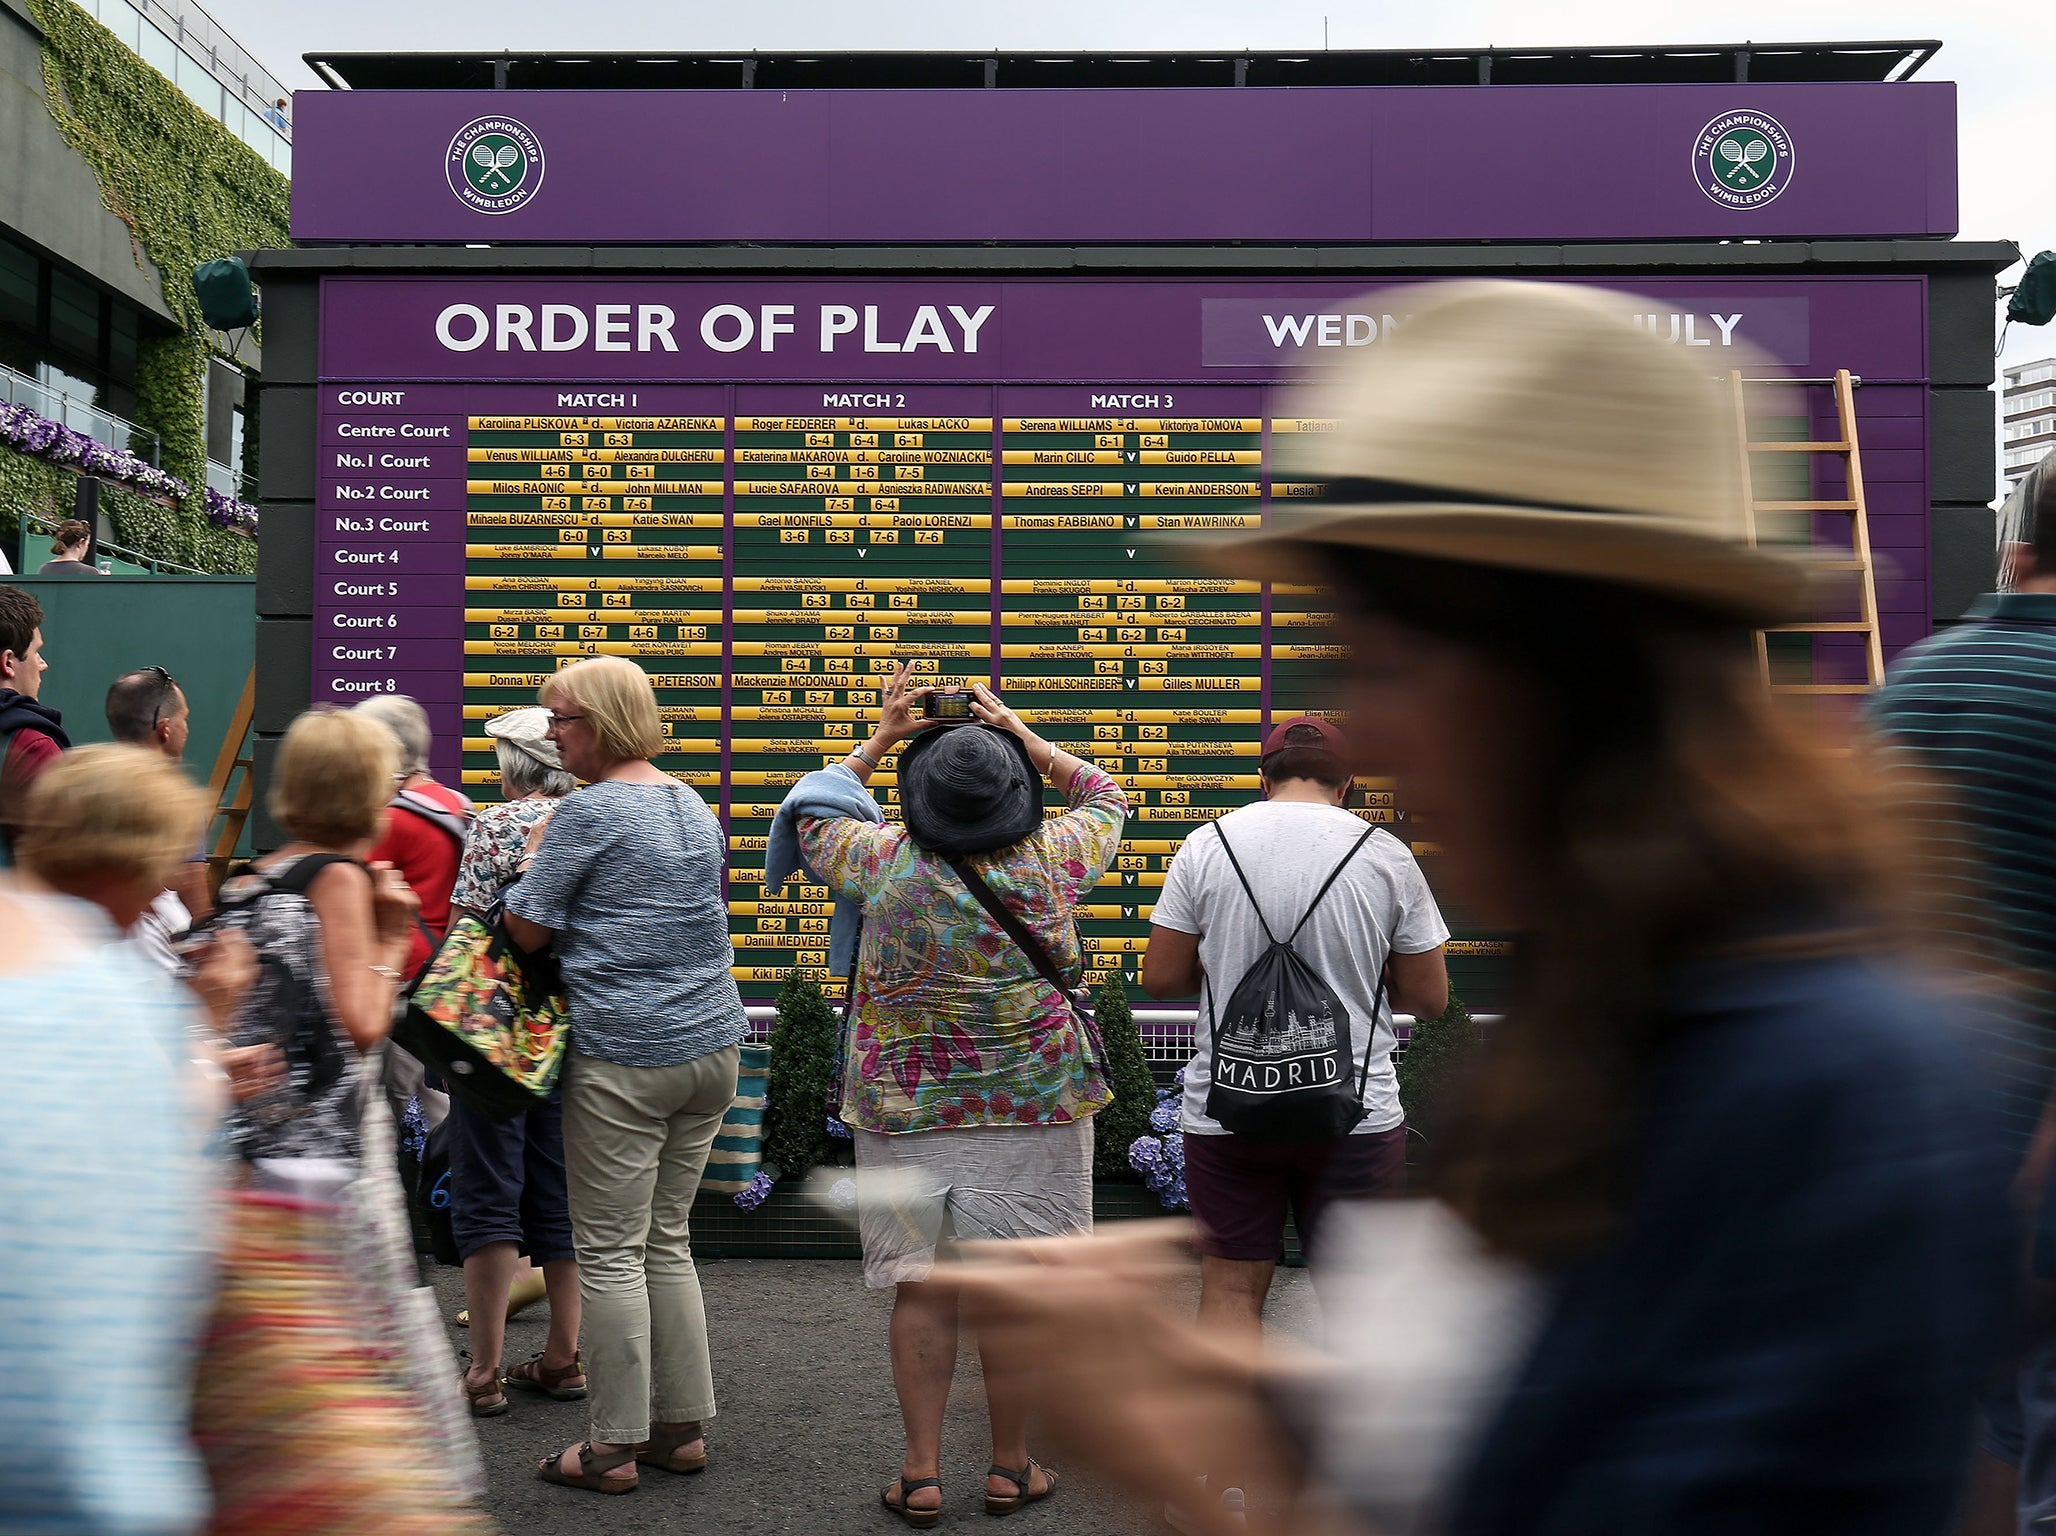 wimbledon order of play 2018 day 4 schedule dates draw. Black Bedroom Furniture Sets. Home Design Ideas